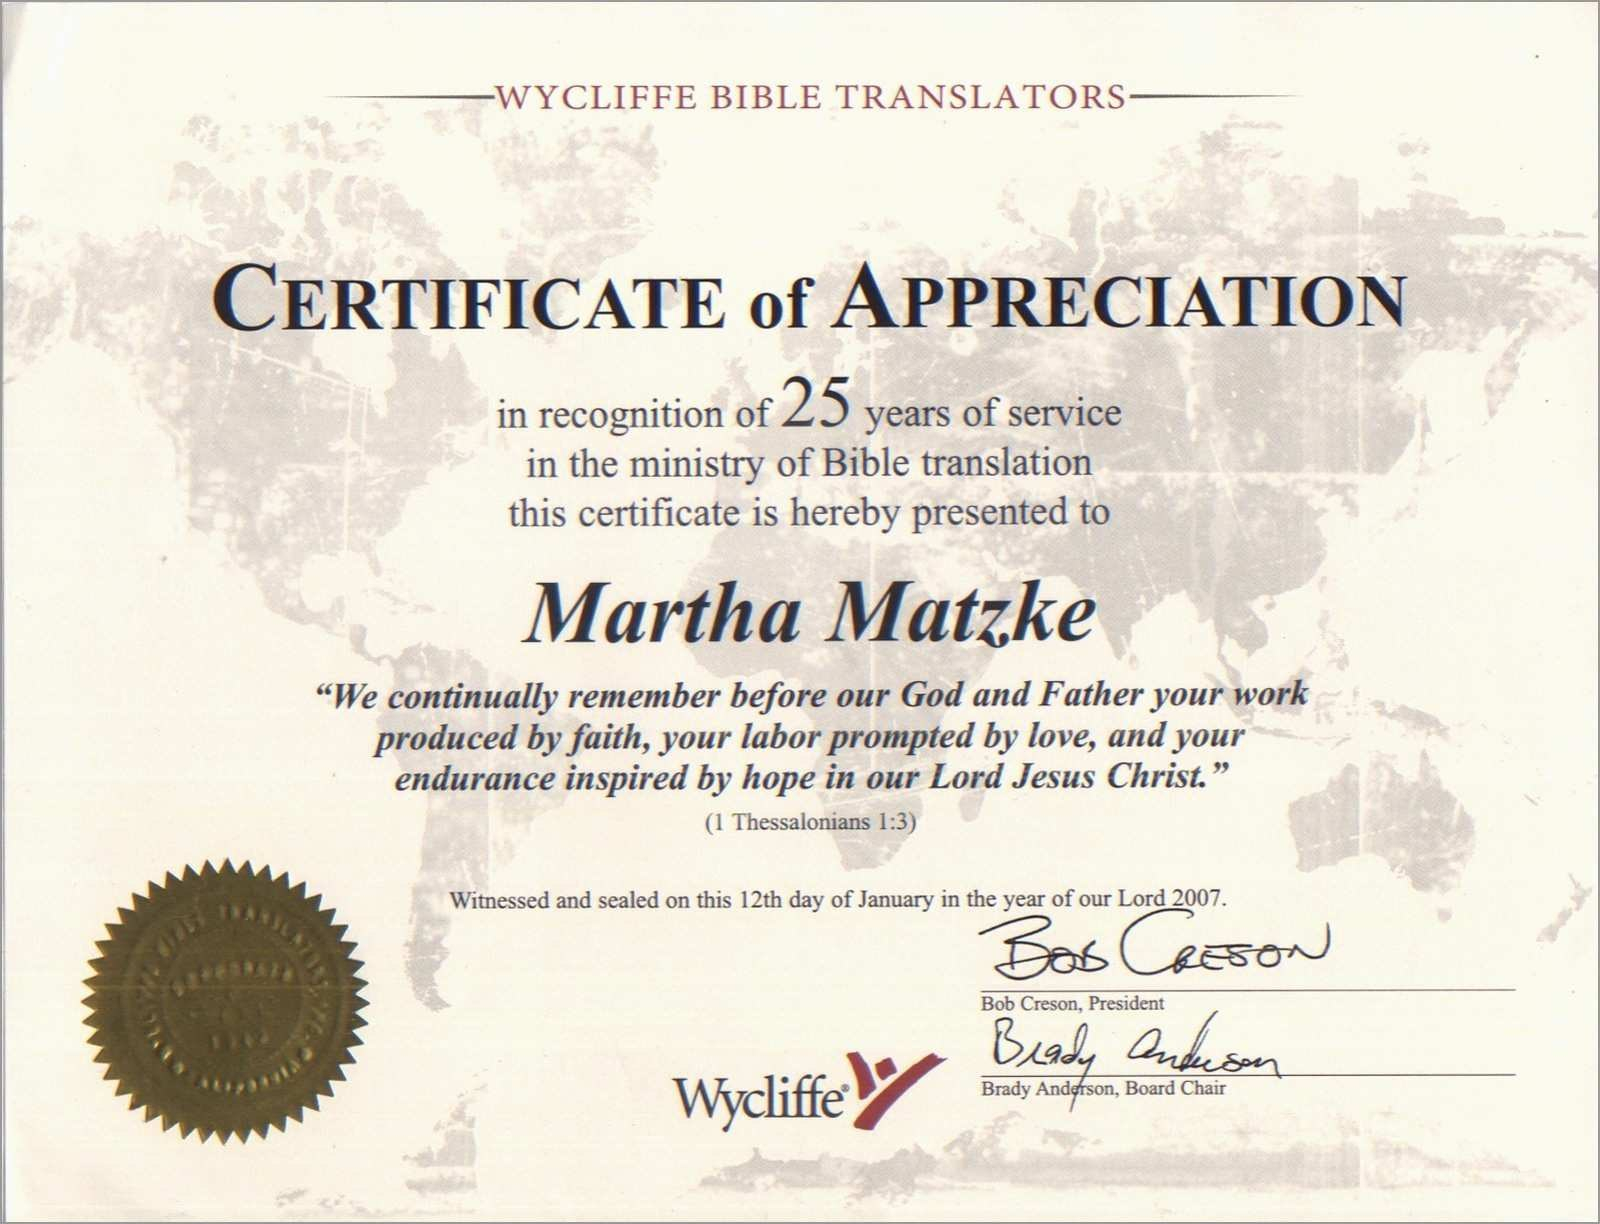 Years Of Service Certificate Template Free Beautiful Certificate In Recognition Of Service Certificate Template